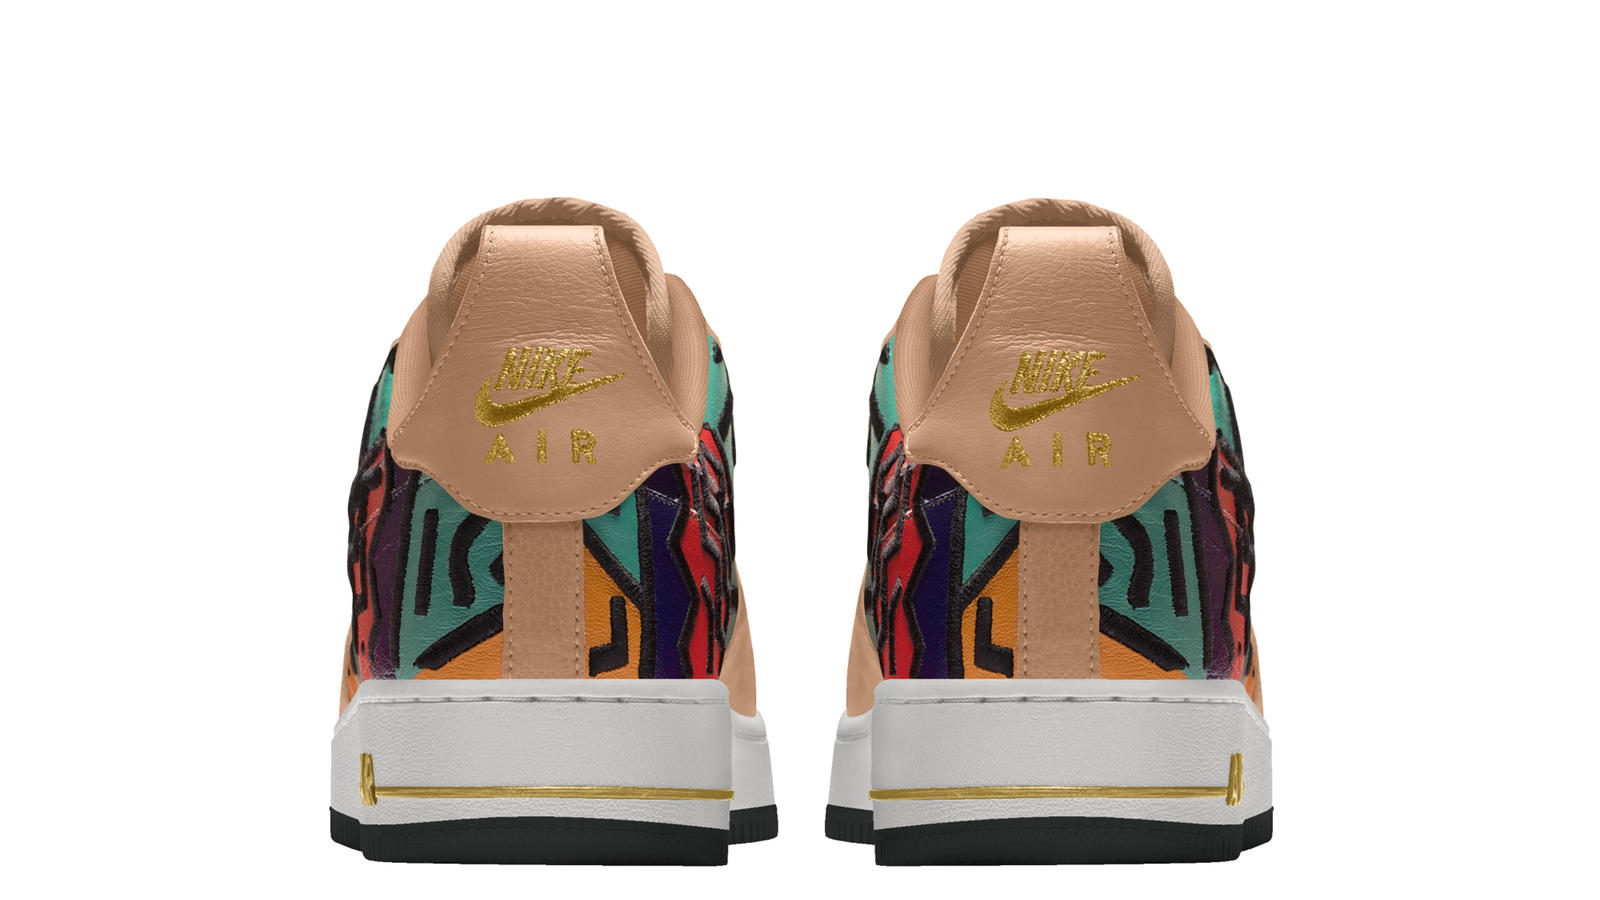 Karabo Poppy Nike By You Air Force 1 4